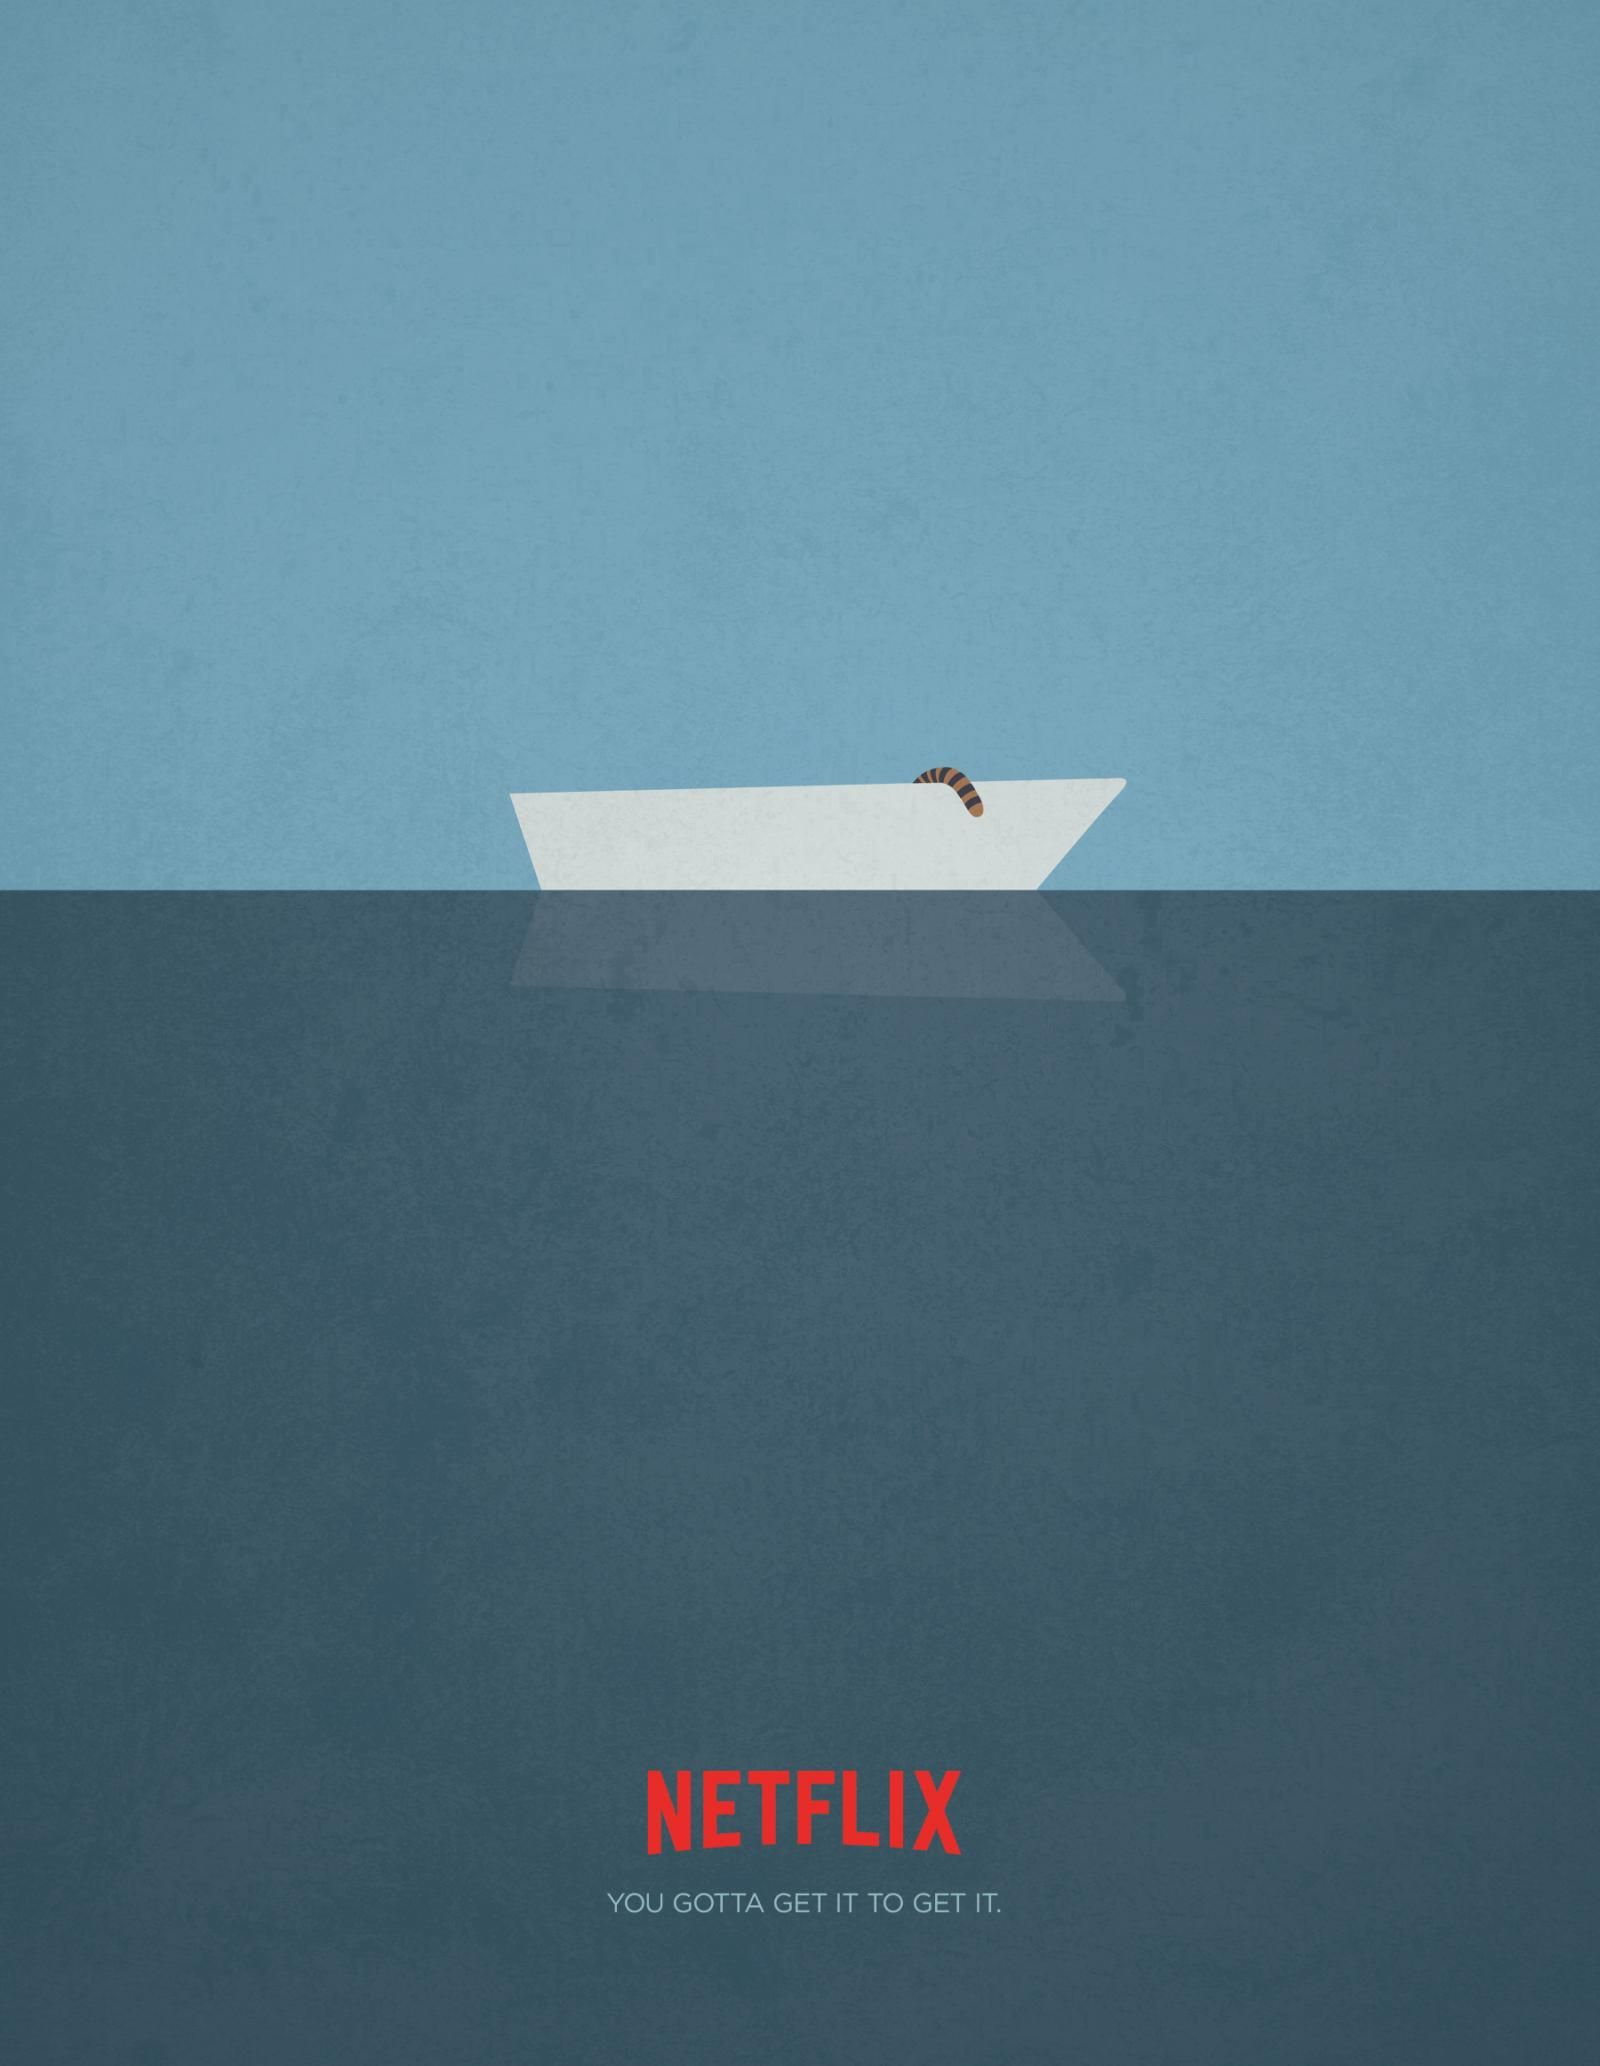 """Netflix: """"Life of Pi"""" Print Ad  by DDB Vancouver Canada, Anonymous Content, Steam"""